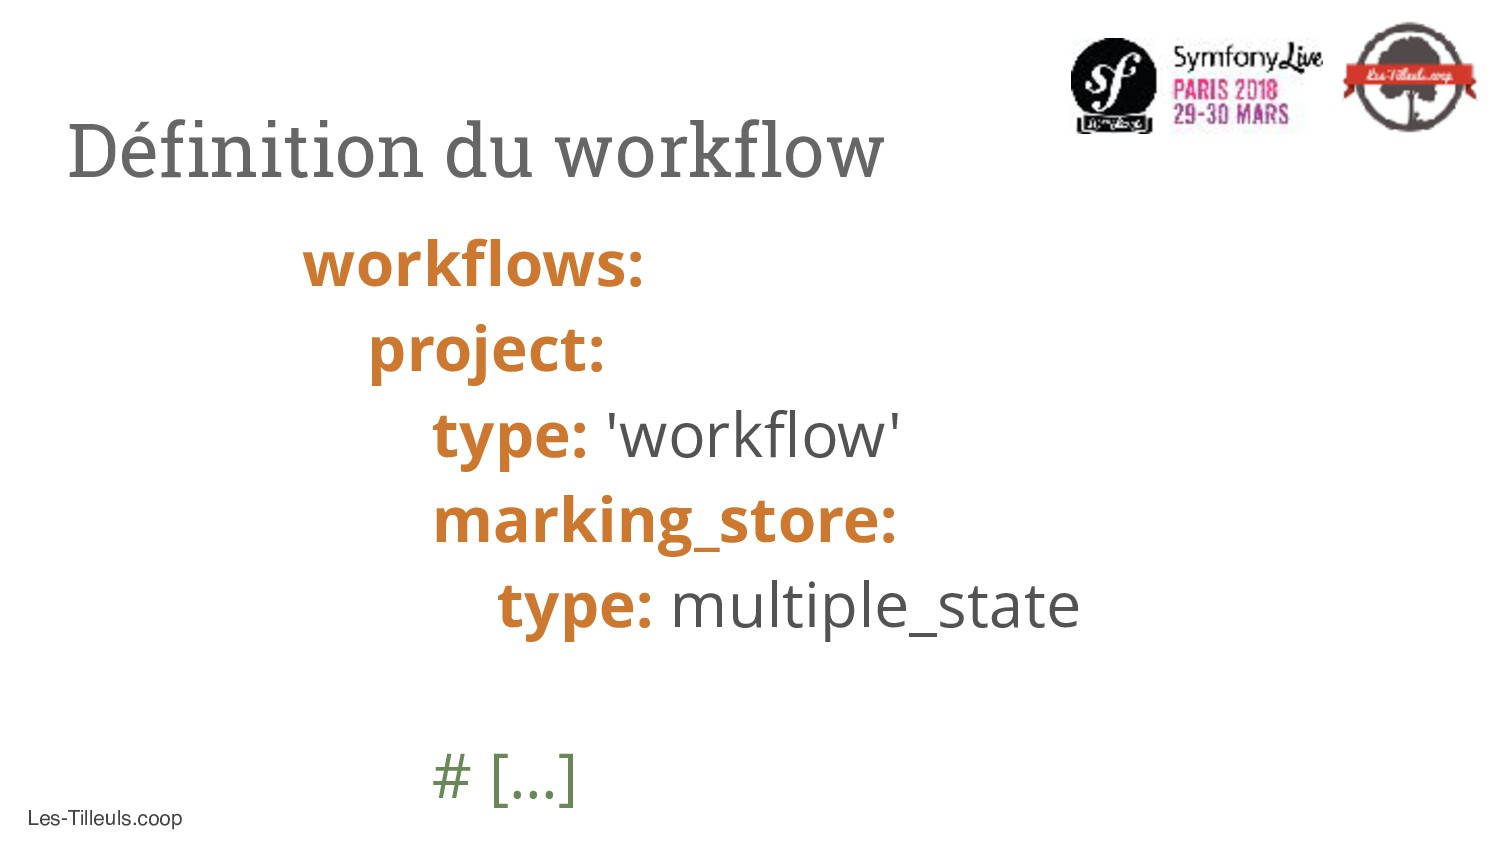 Les-Tilleuls.coop workflows: project: type: 'wo...